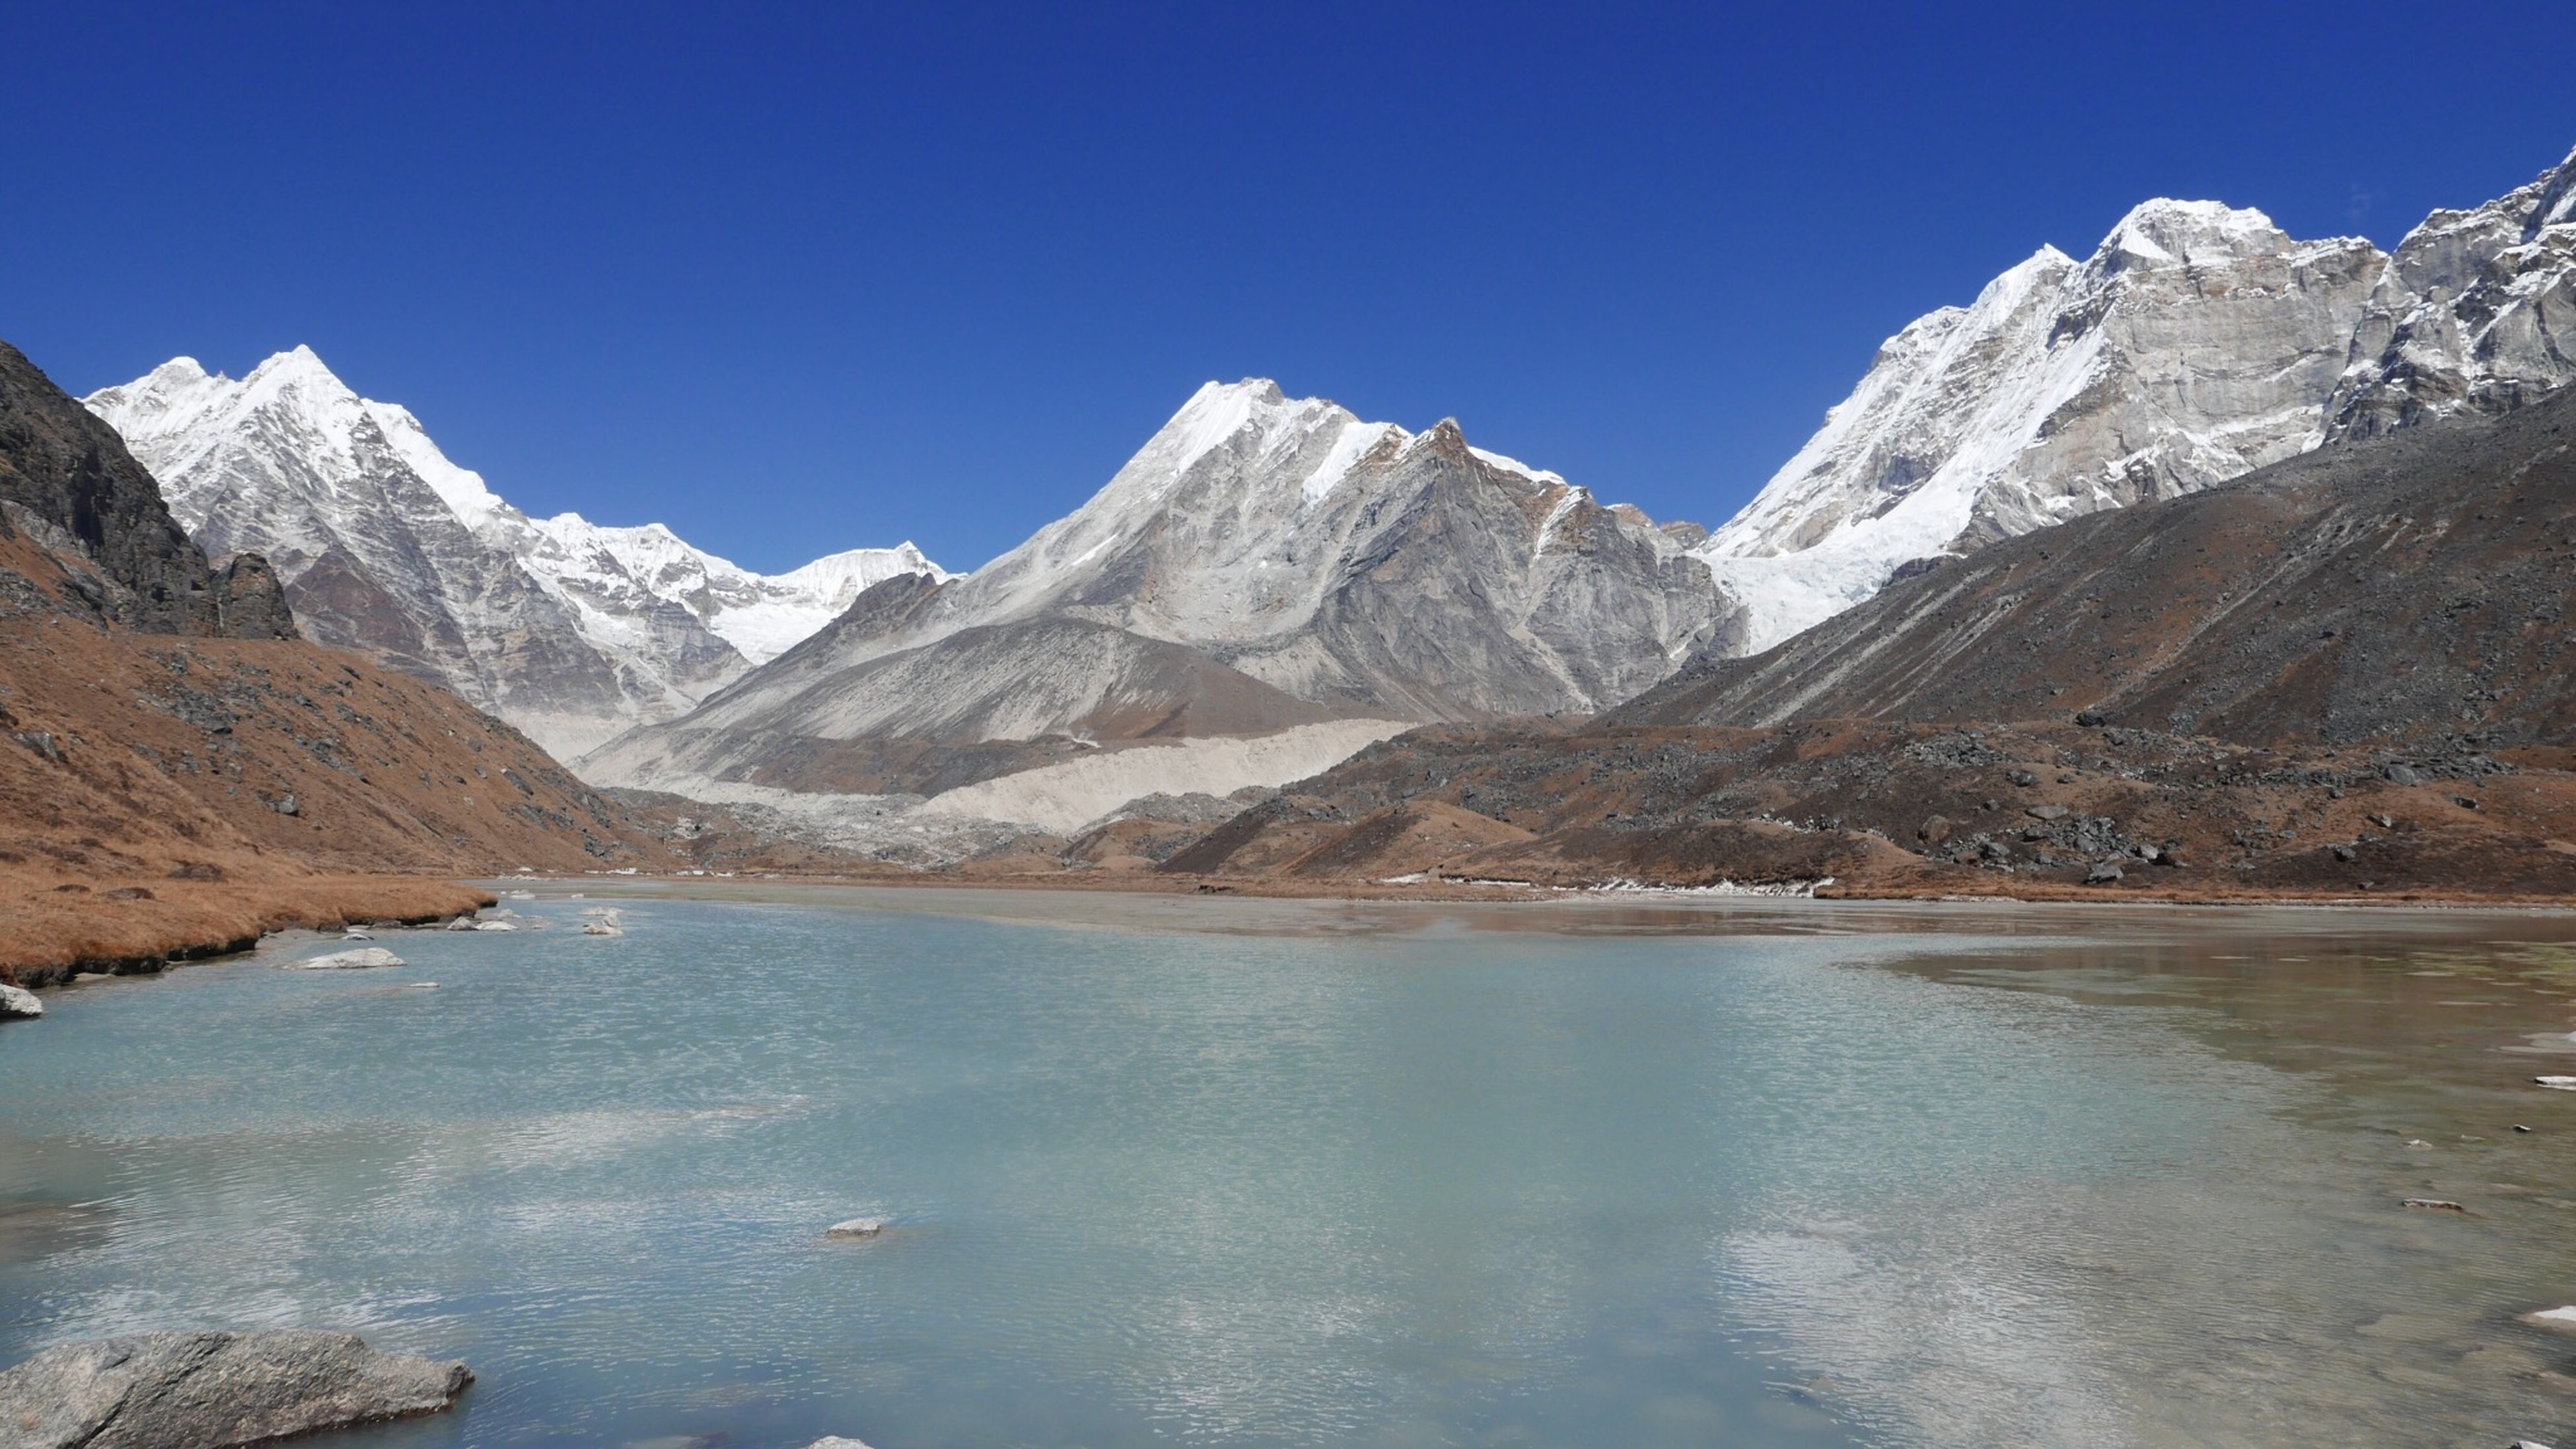 snow, winter, mountain, cold temperature, season, snowcapped mountain, mountain range, tranquil scene, tranquility, scenics, beauty in nature, lake, water, clear sky, blue, frozen, nature, weather, non-urban scene, idyllic